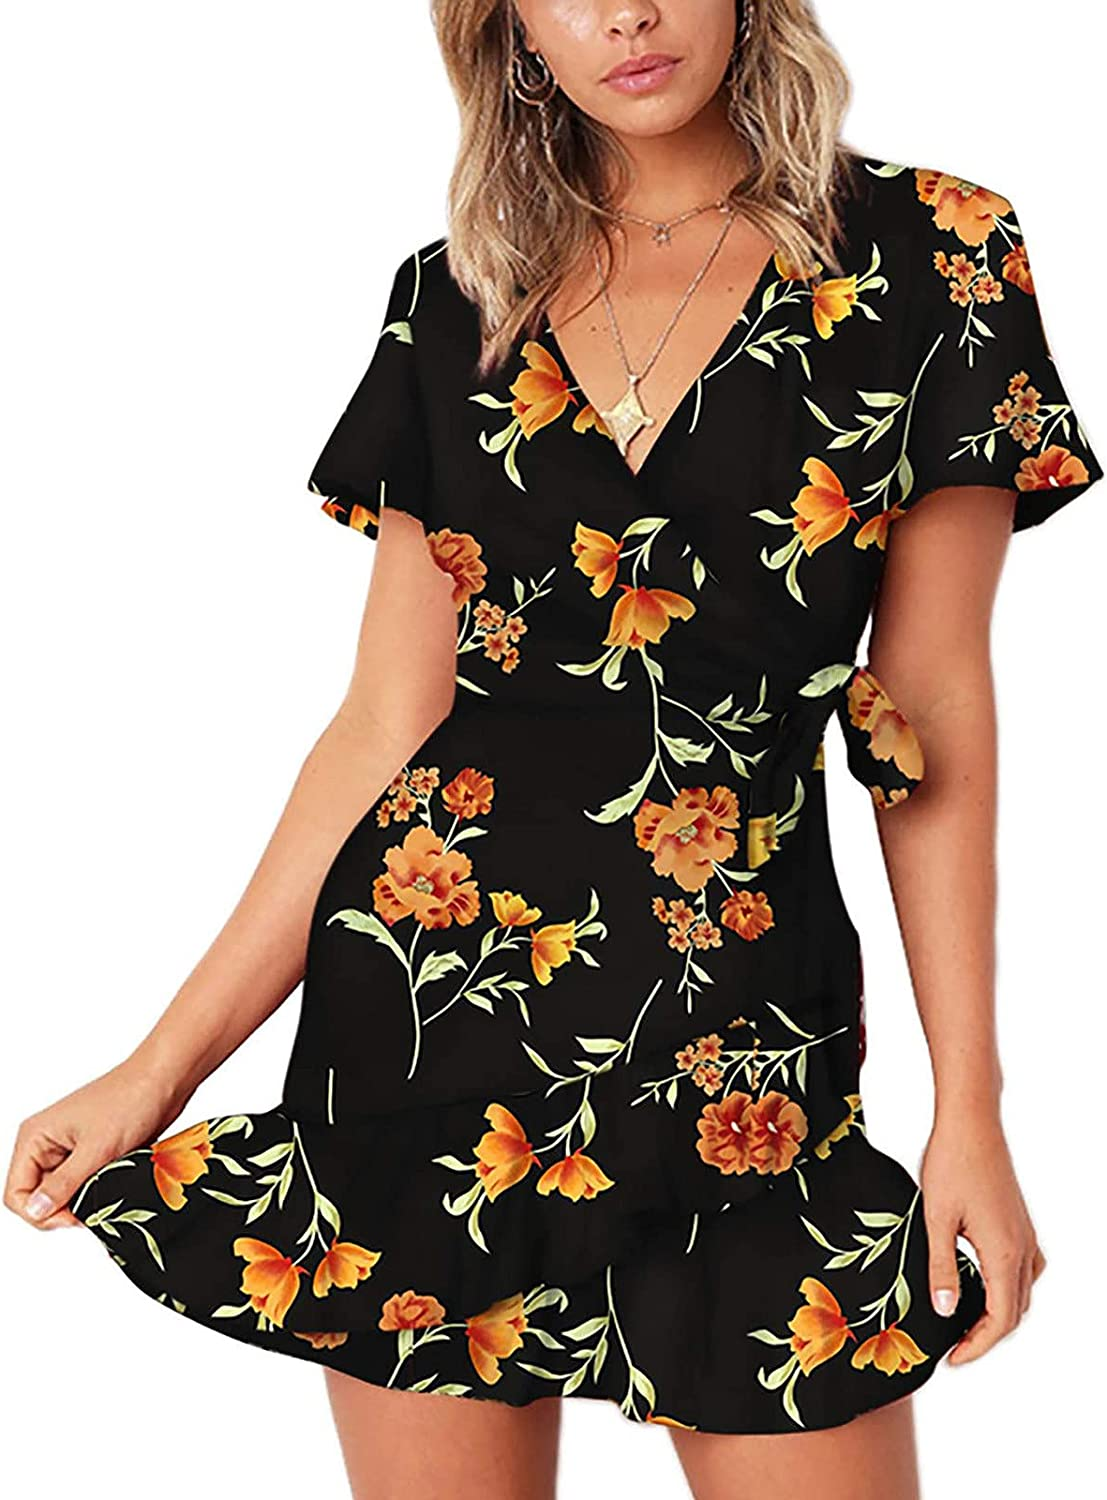 VISOEP Womens Summer Short-Sleeved V-Neck Casual Butterfly Lace-up Ruffle Dress Mini Dresses